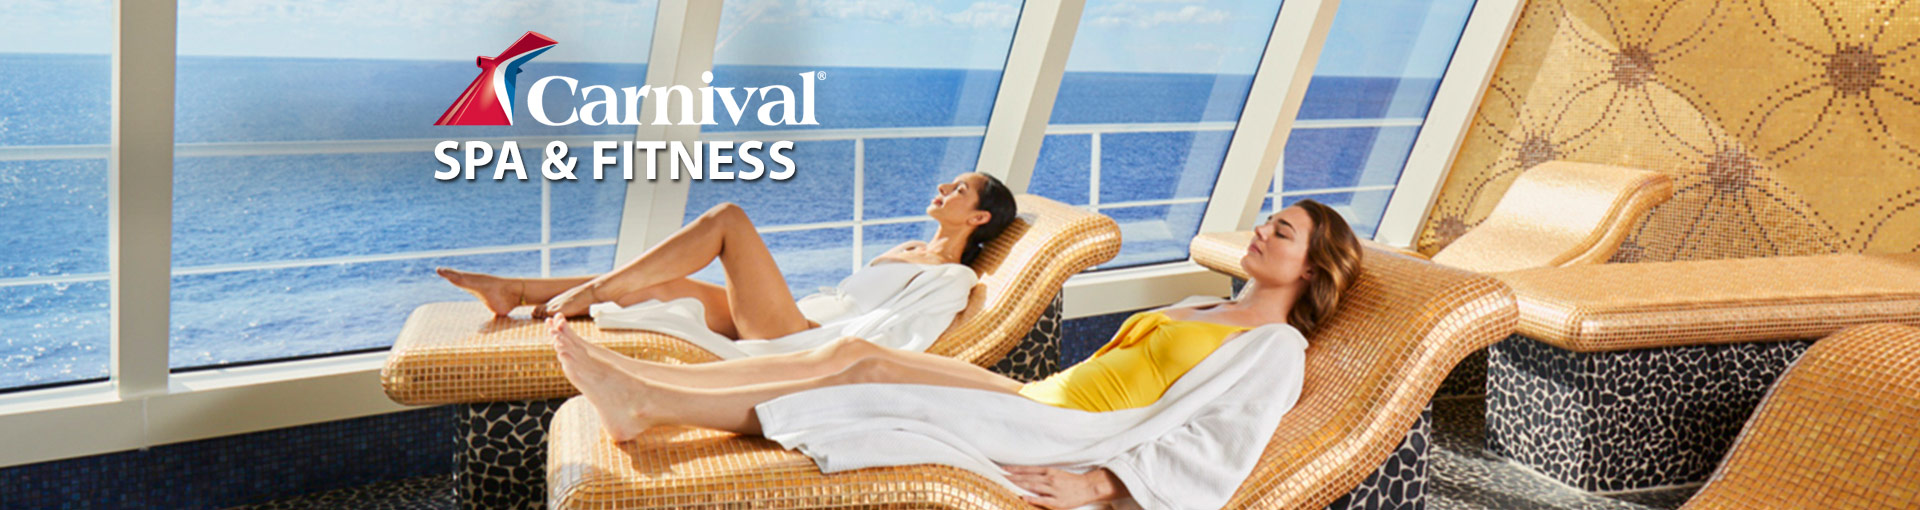 Carnival Cruise Line Spa & Fitness